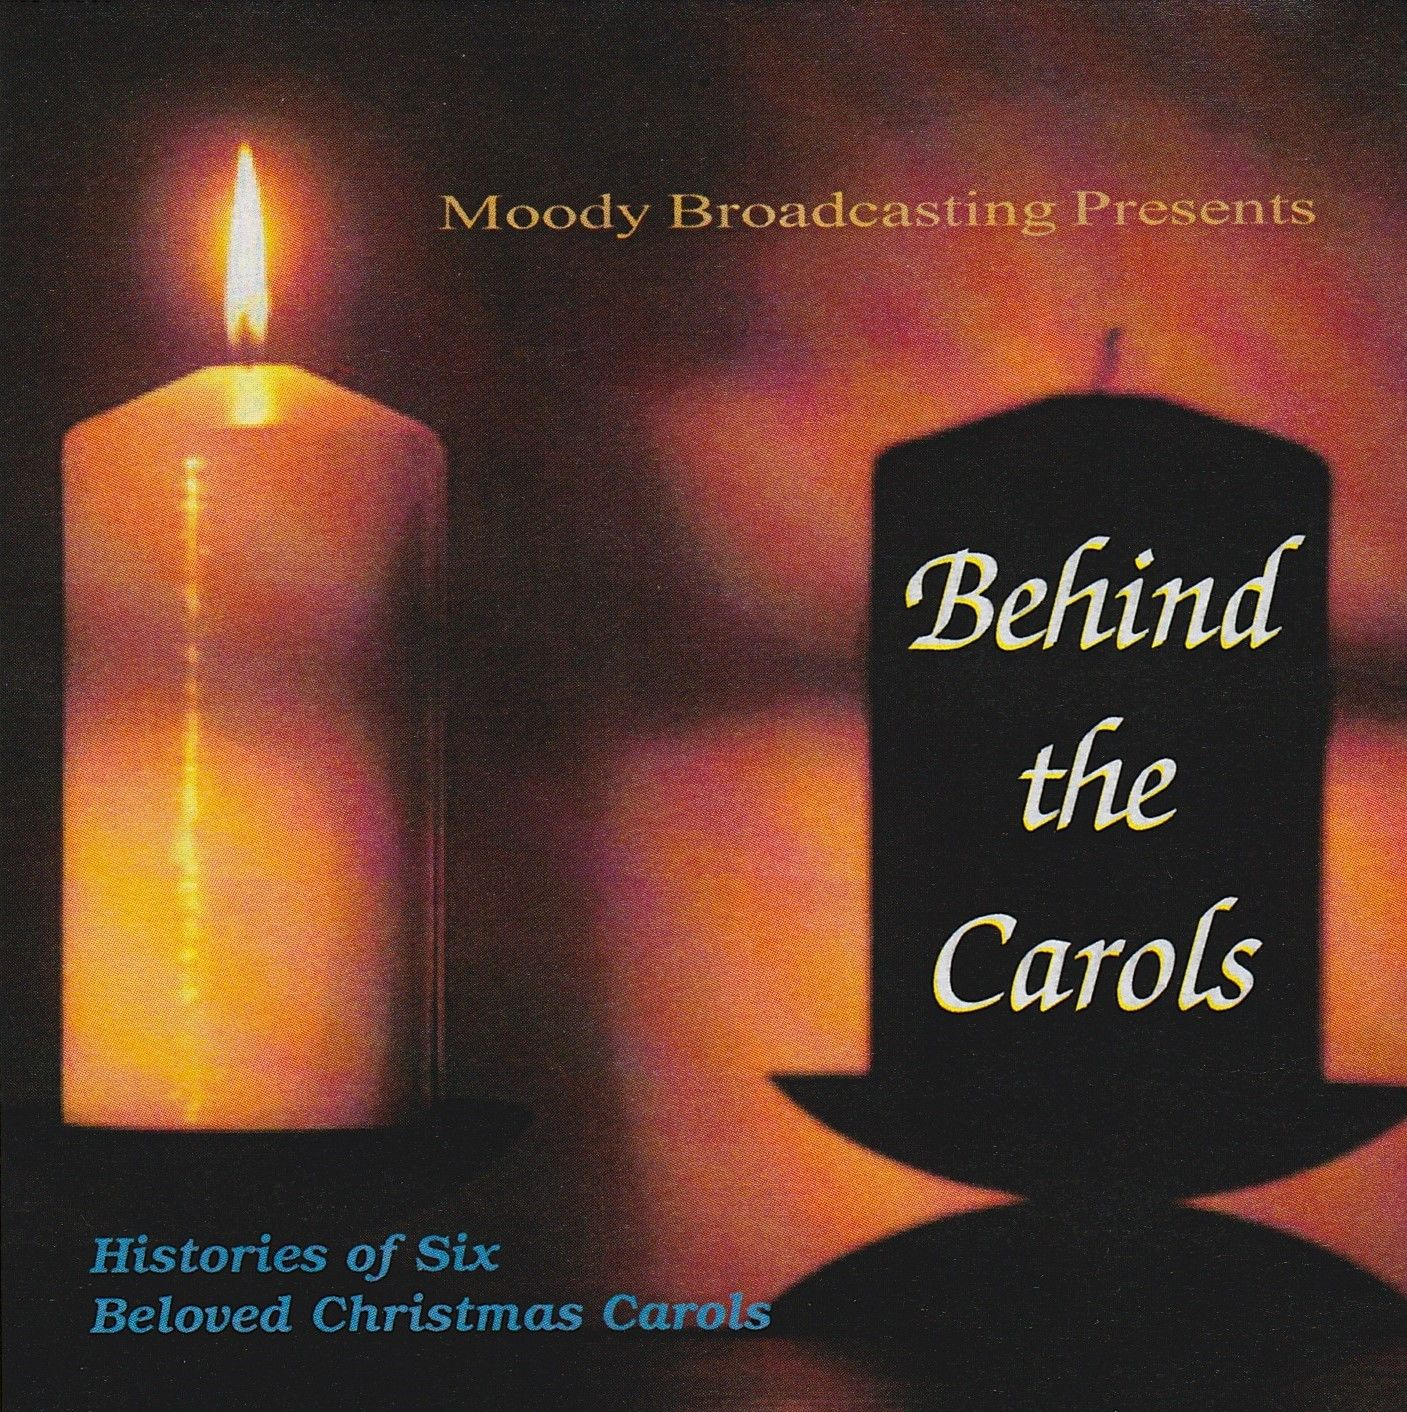 Behind the Carols Christmas special